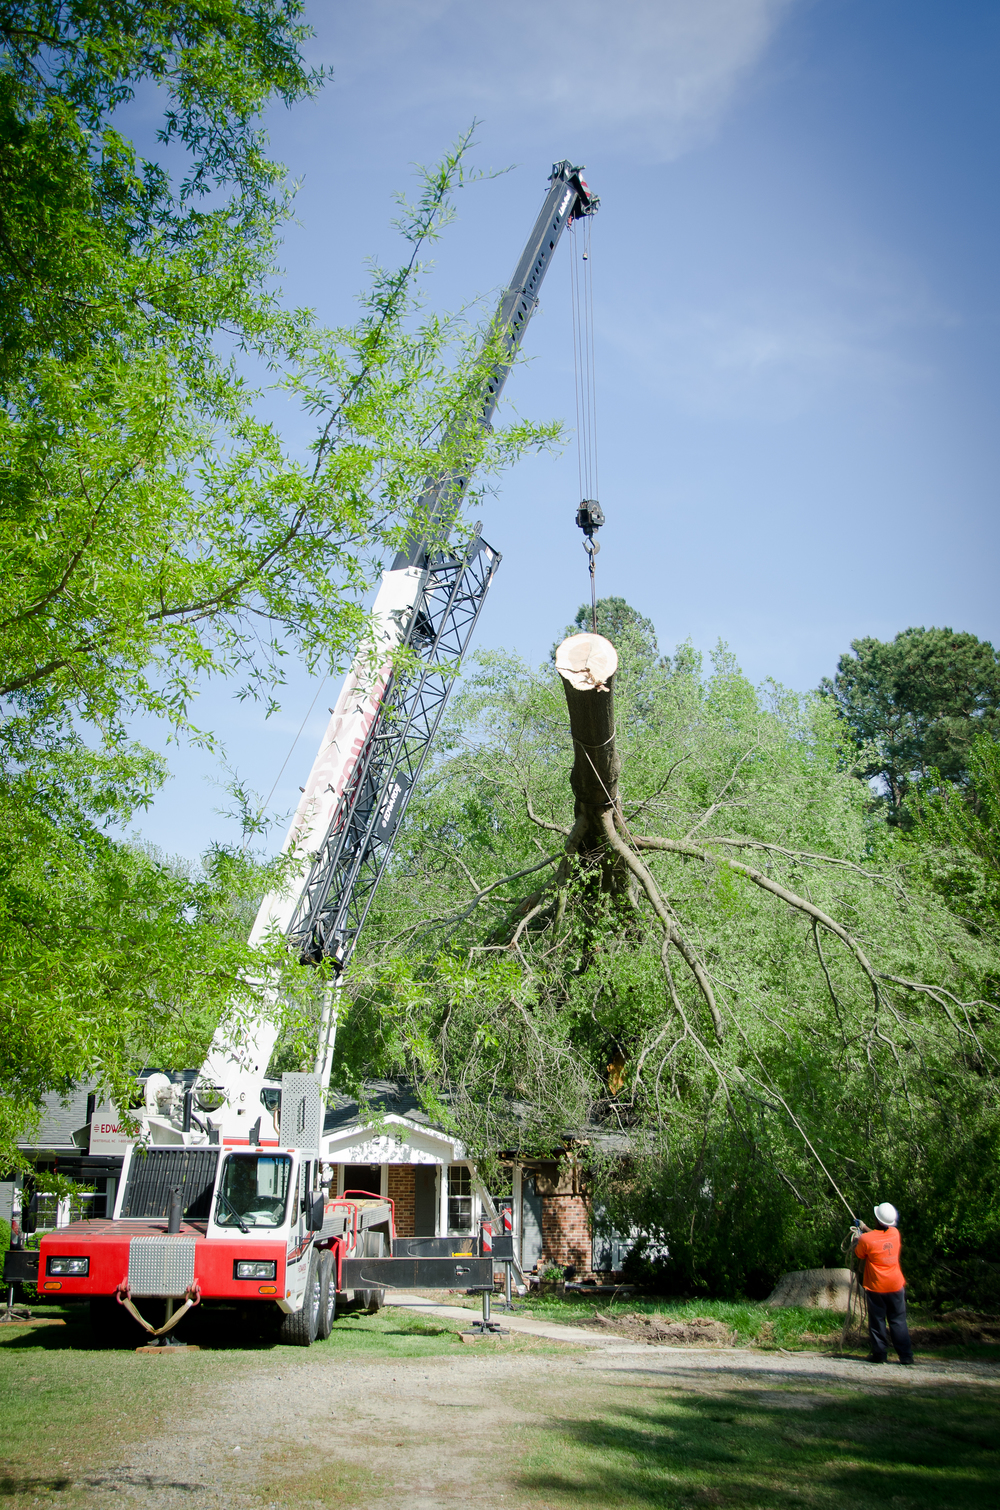 Crane removing large tree after wind storm